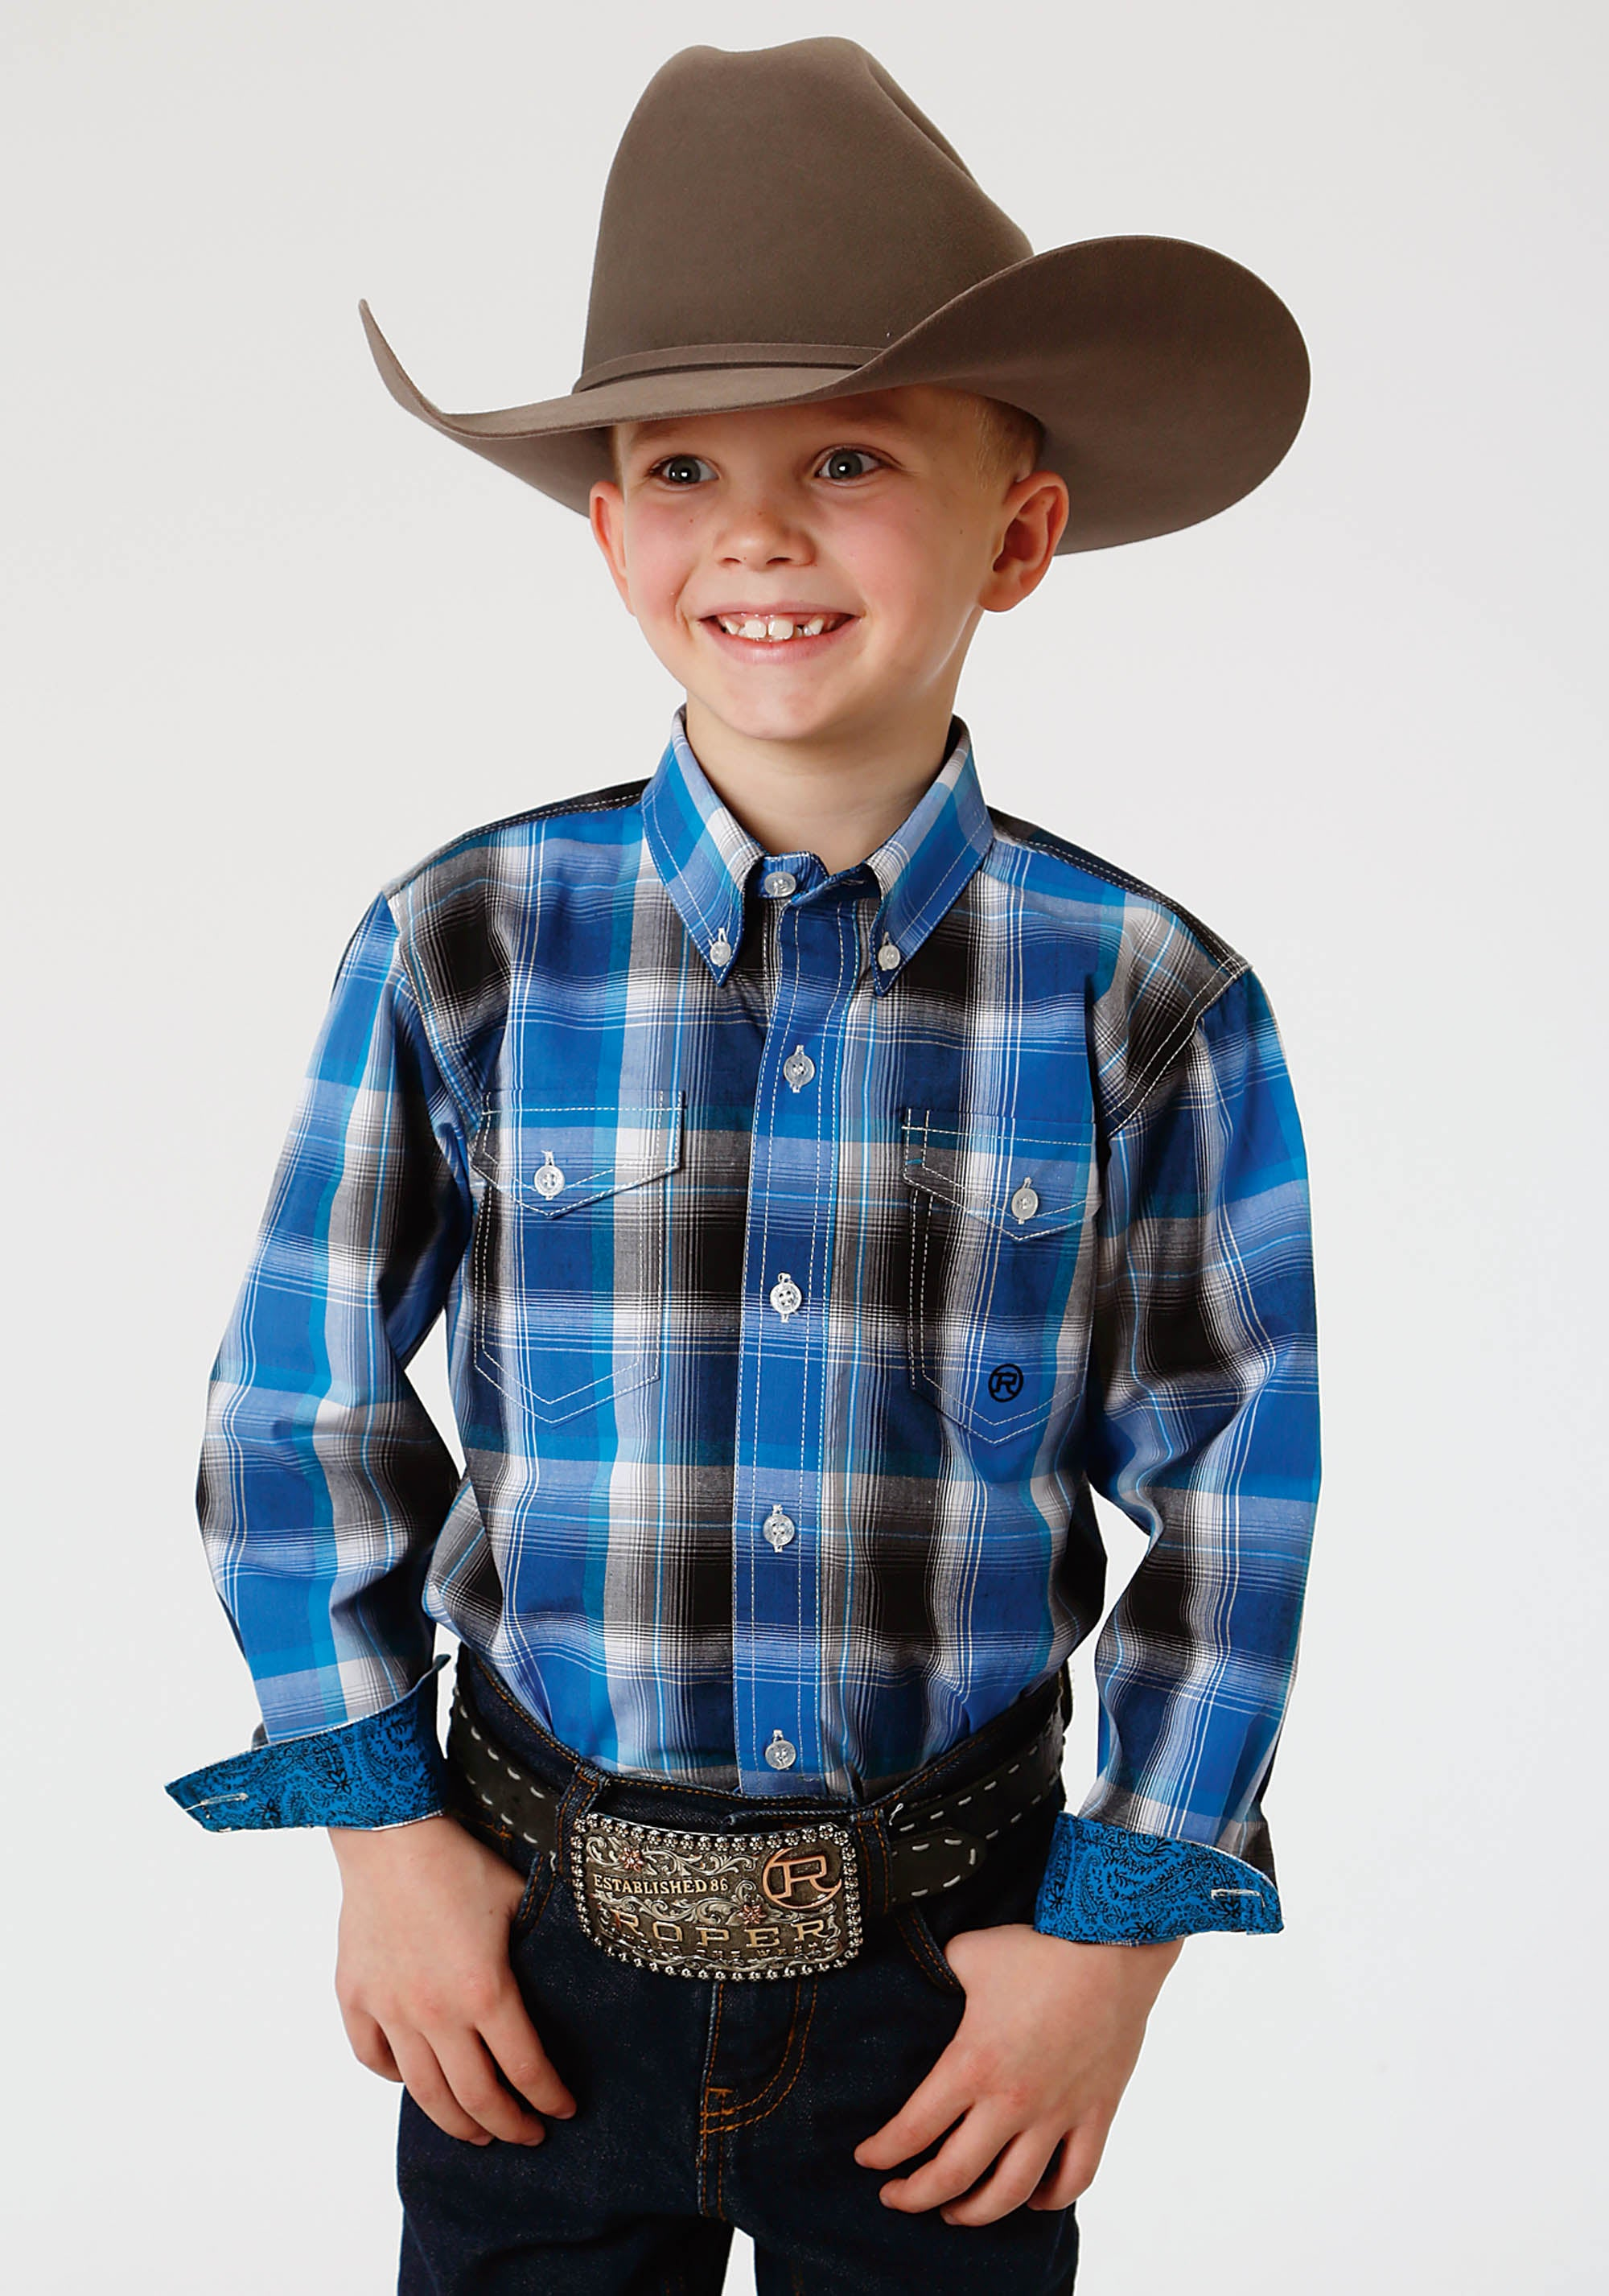 ROPER BOYS BLUE 1353 BLUE STAR PLAID BOYS AMARILLO COLLECTION- STARLIGHT LONG SLEEVE